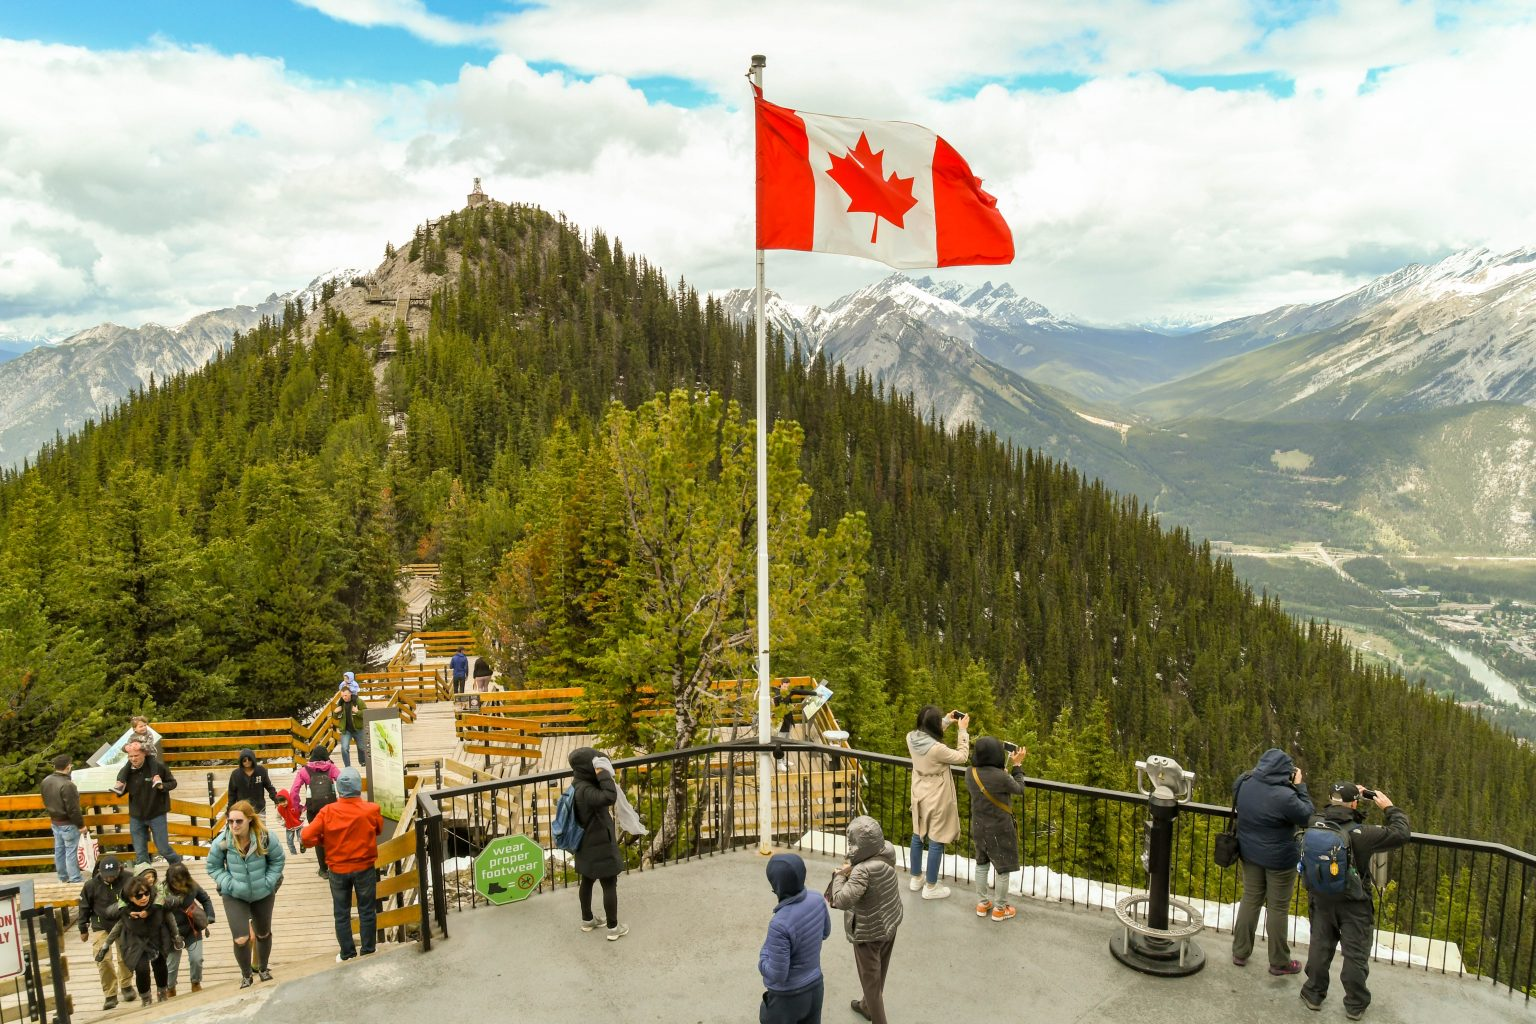 BANFF, AB, CANADA - JUNE 2018: Visitors on the lookout point on the top of Sulphur Mountain in Banff.